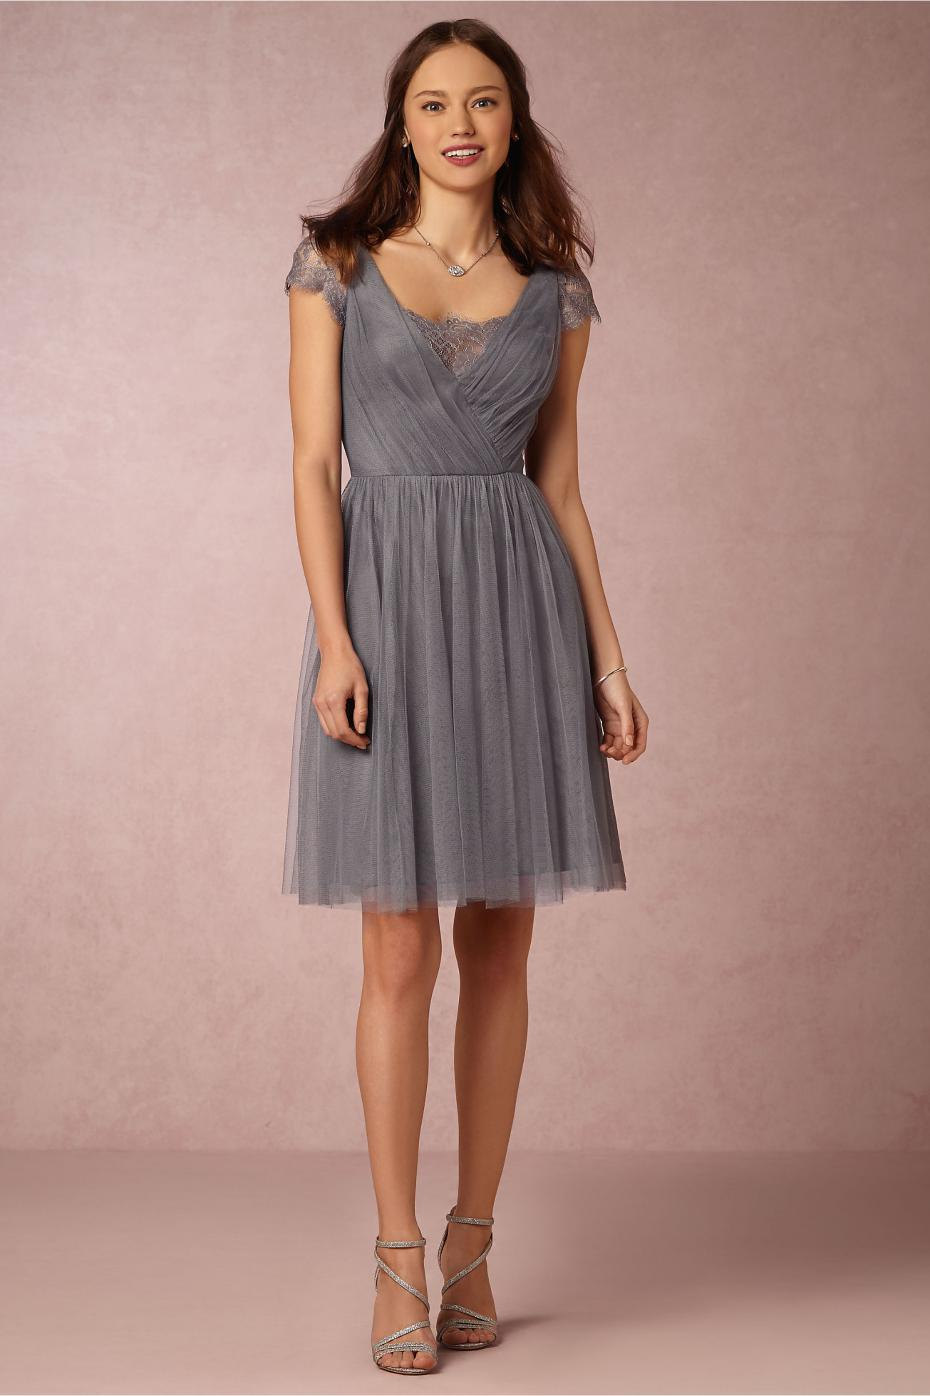 Compare Prices on Grey Bridesmaid Dresses- Online Shopping/Buy Low ...